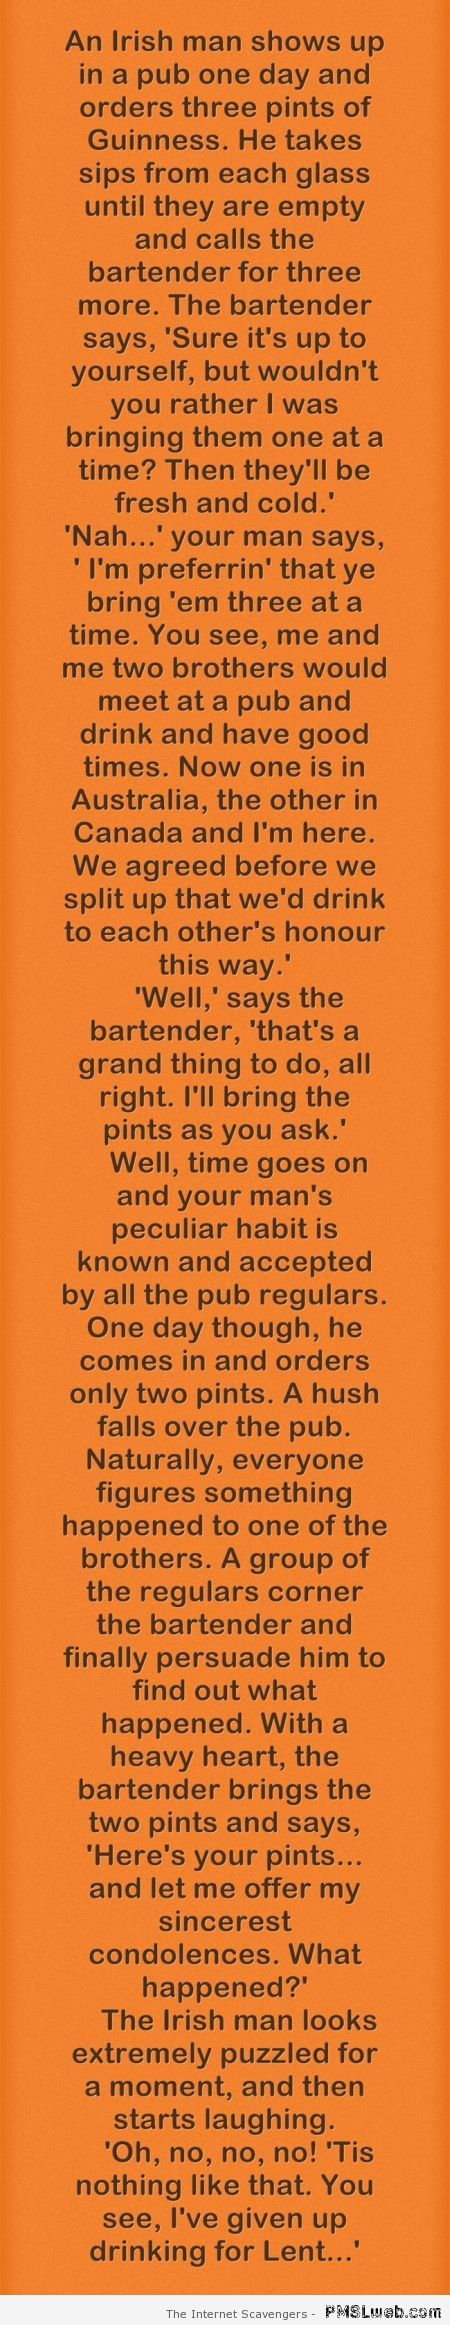 An Irish man shows up in a pub joke at PMSLweb.com